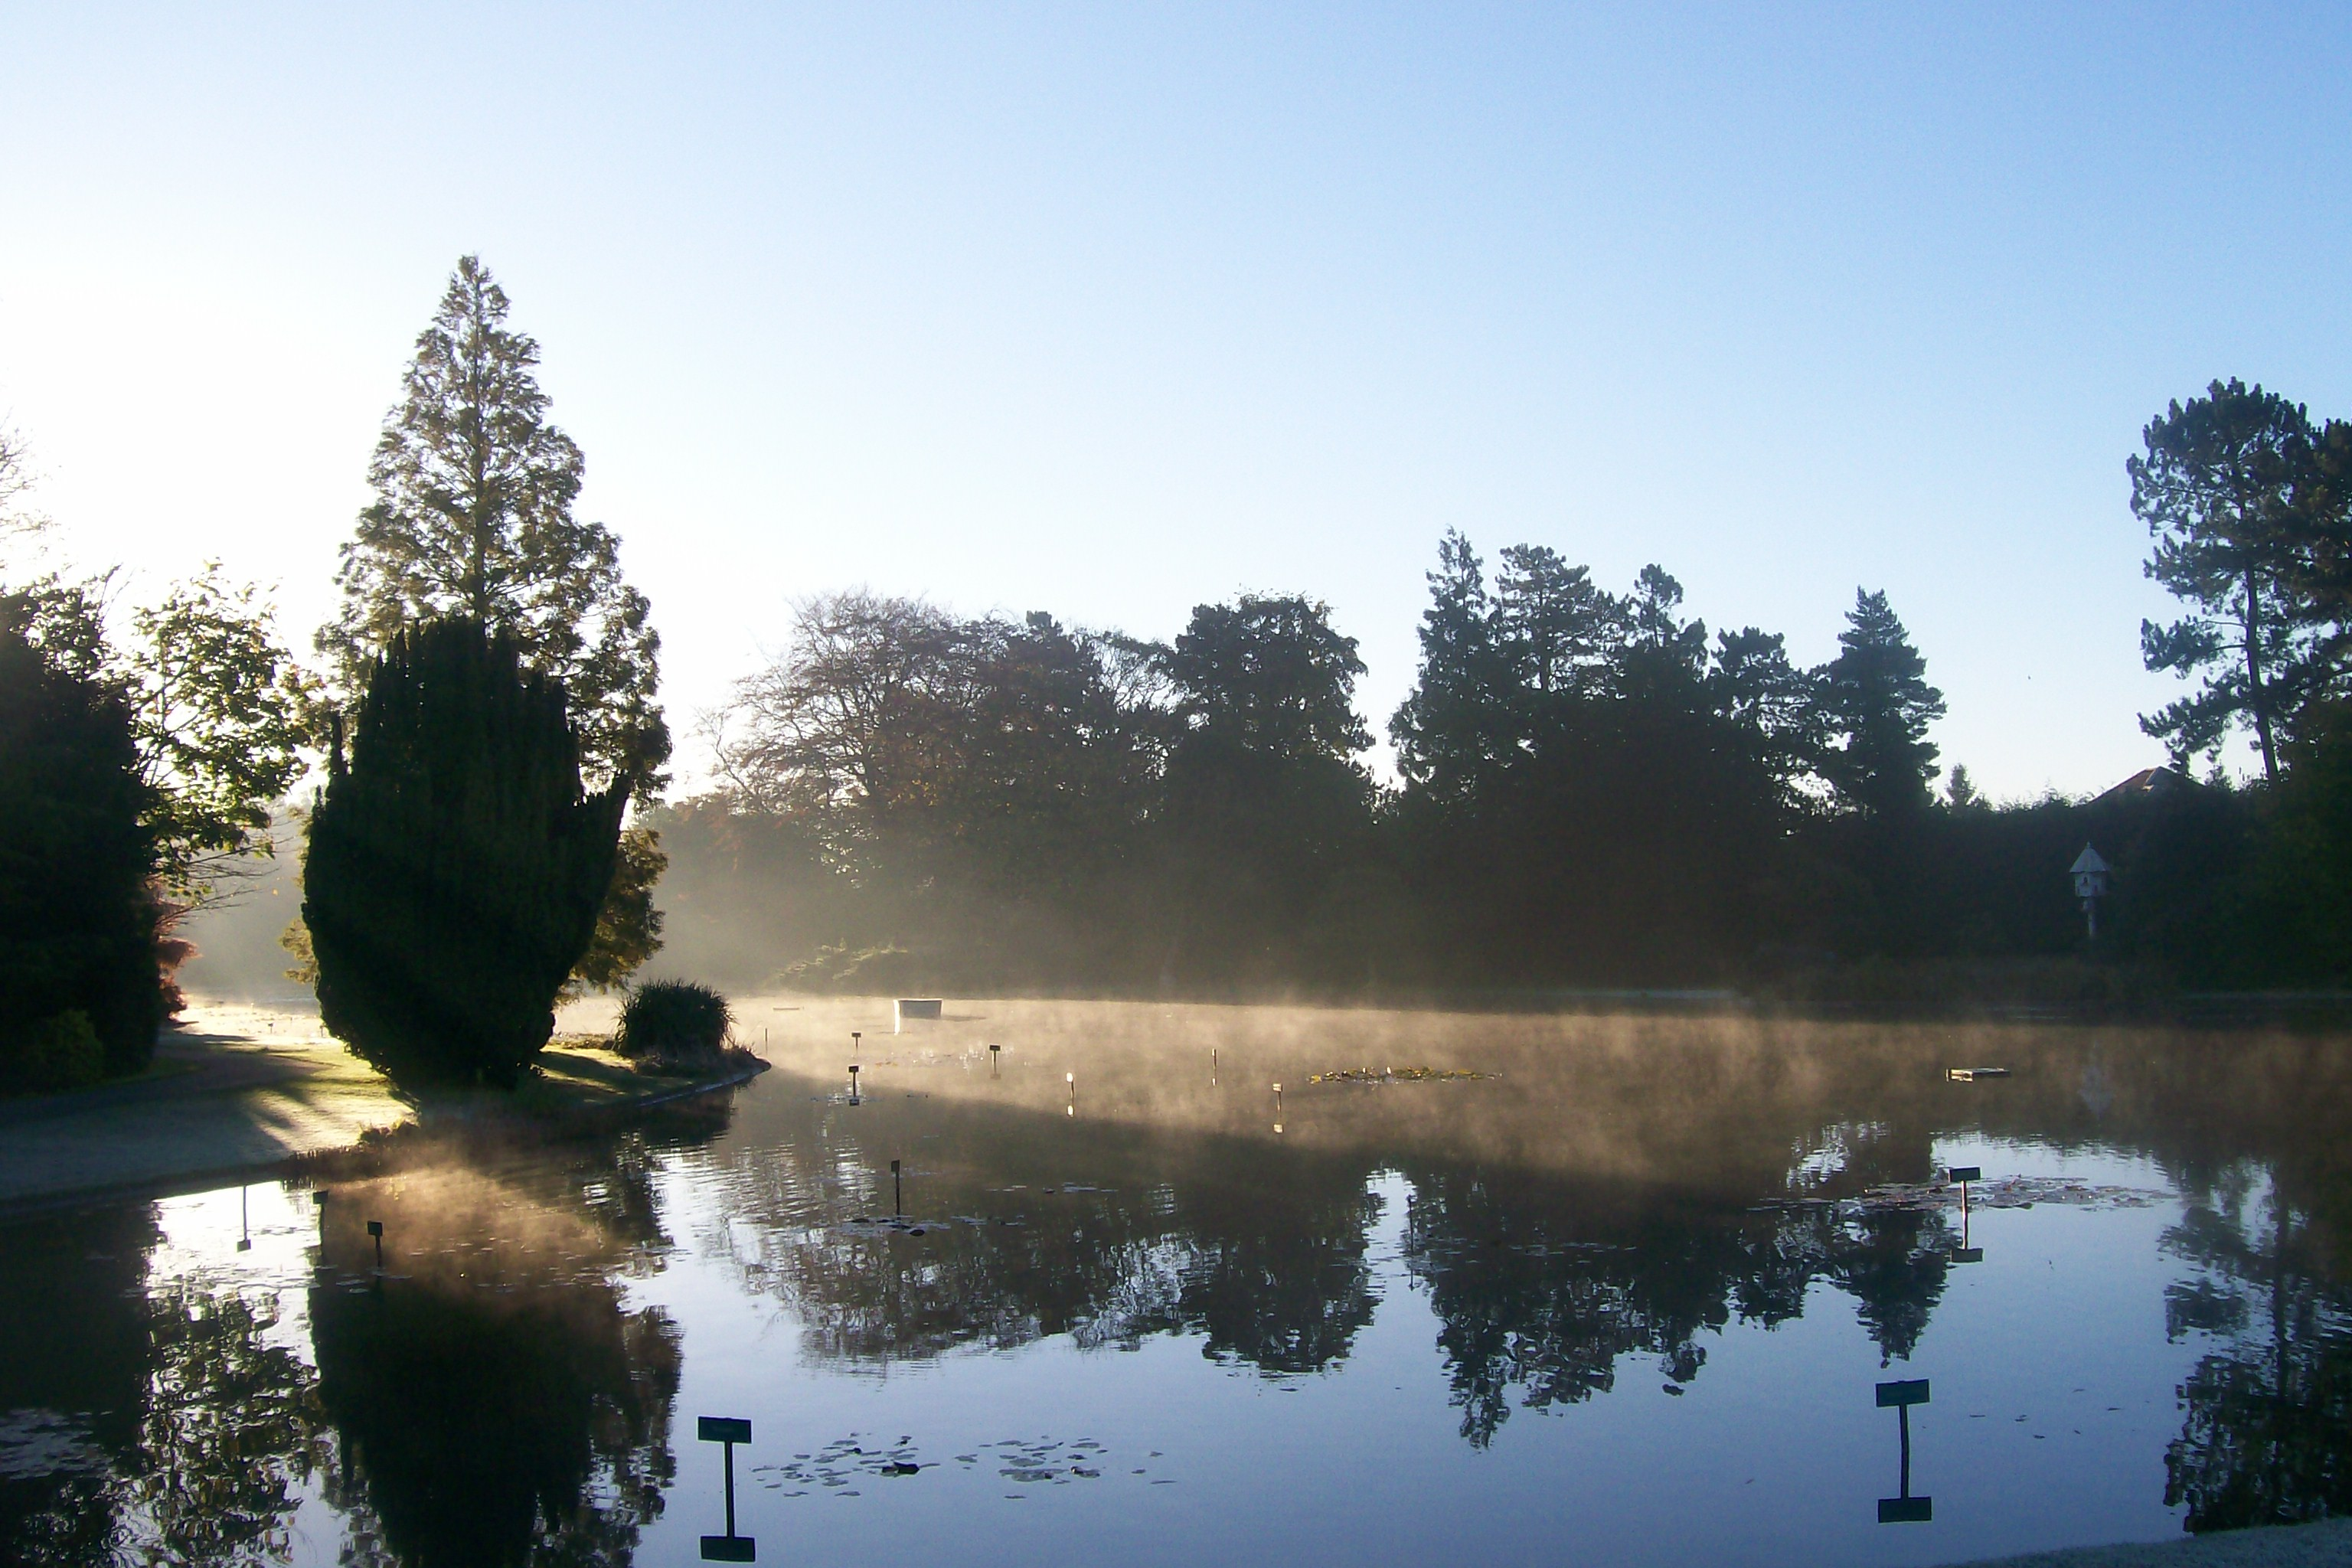 A beautiful lake skirted by plants and trees at Burnby Hall Gardens